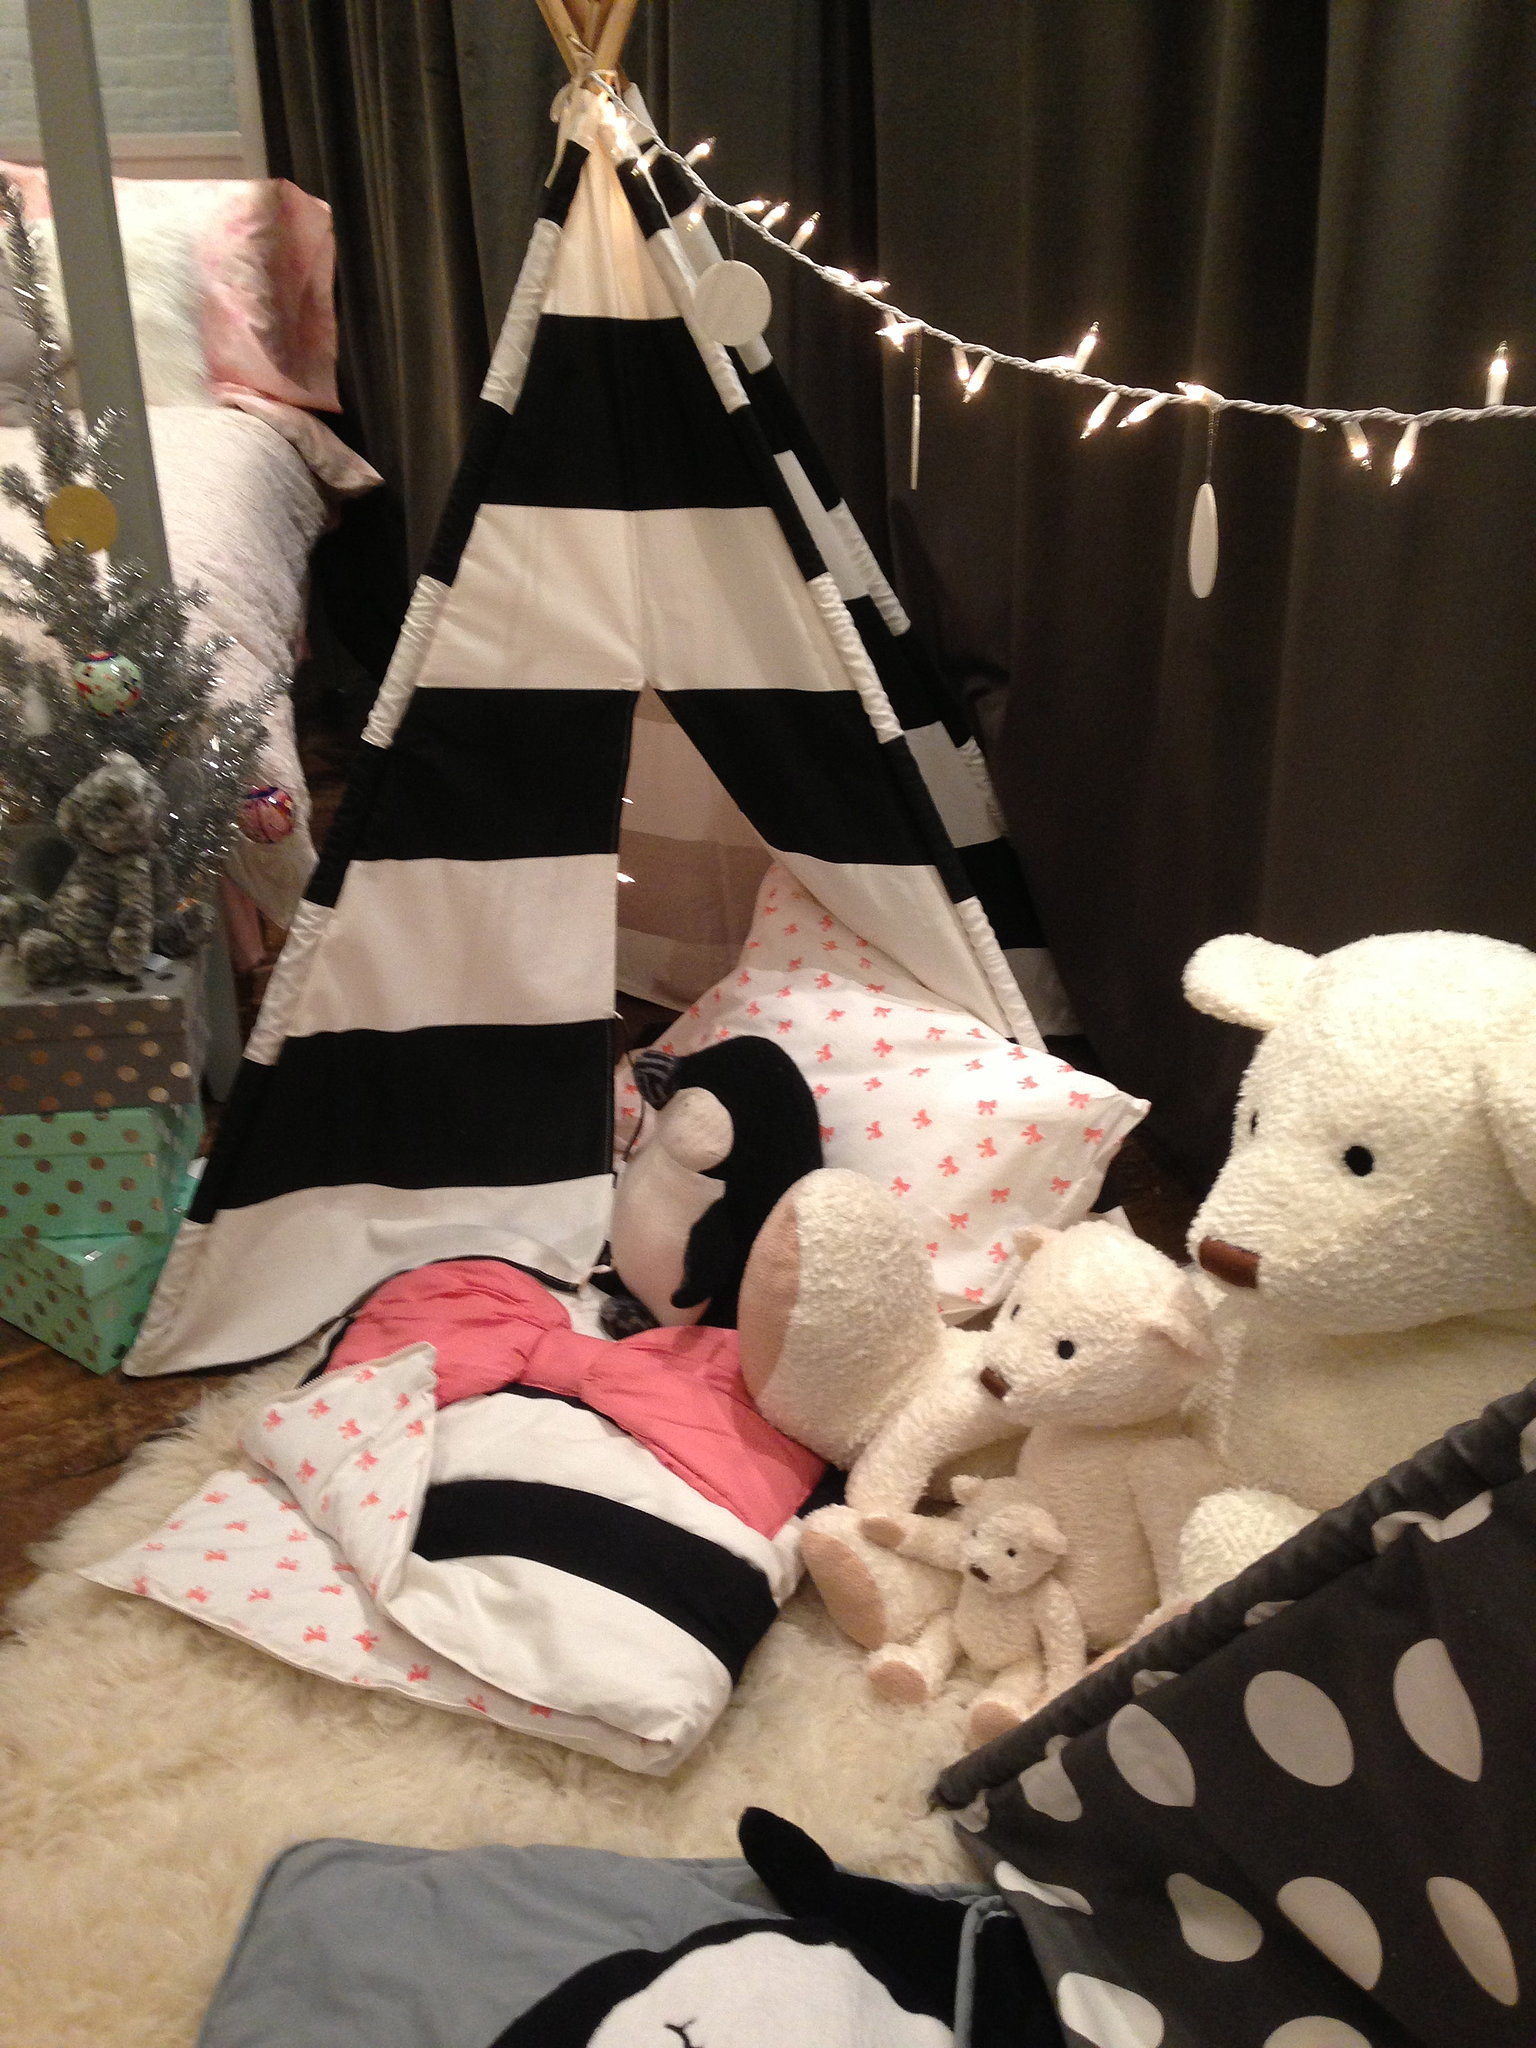 Check out the giant pink bow on that sleeping bag — a little girly girl's dream come true!